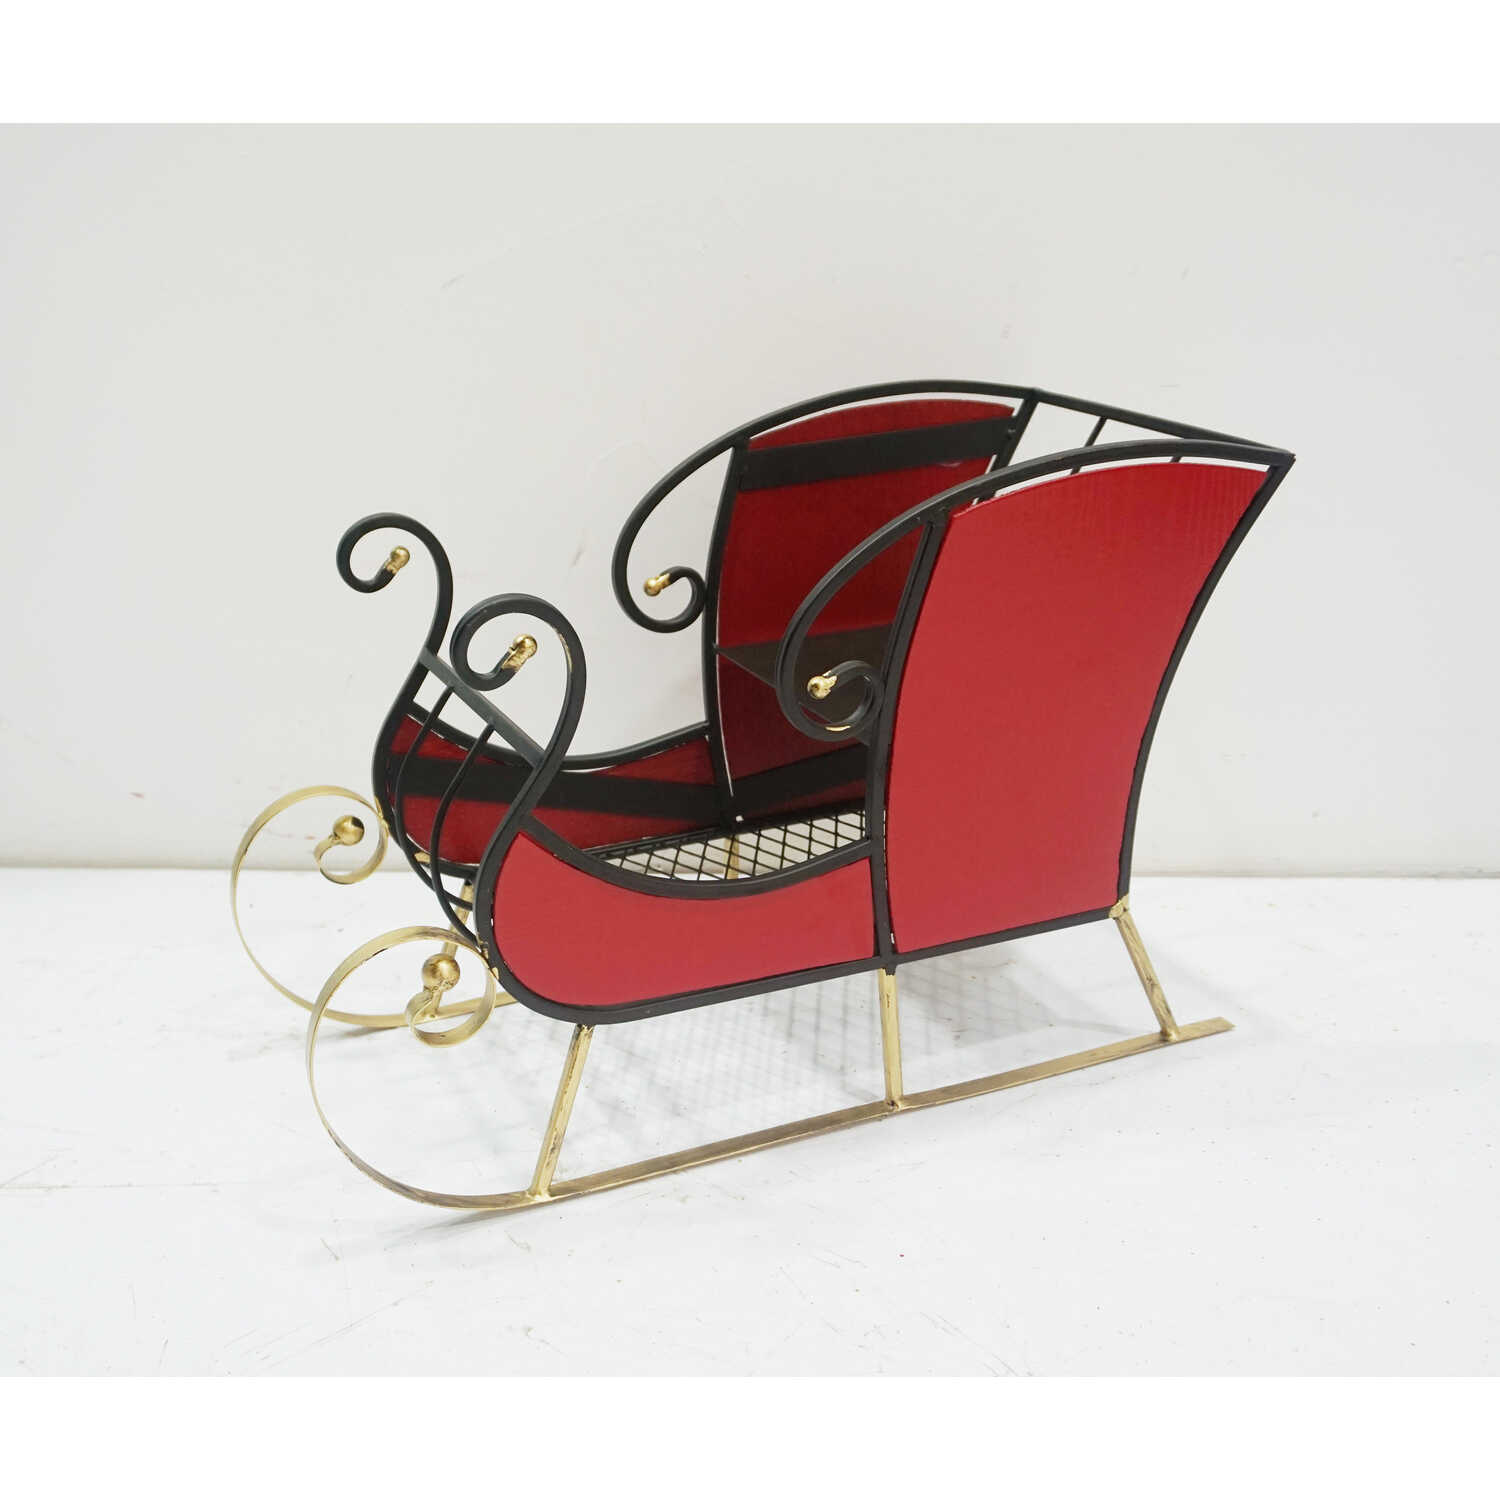 Sunset Vista  Table Top Sleigh  Christmas Decoration  Red  Metal  1 pk